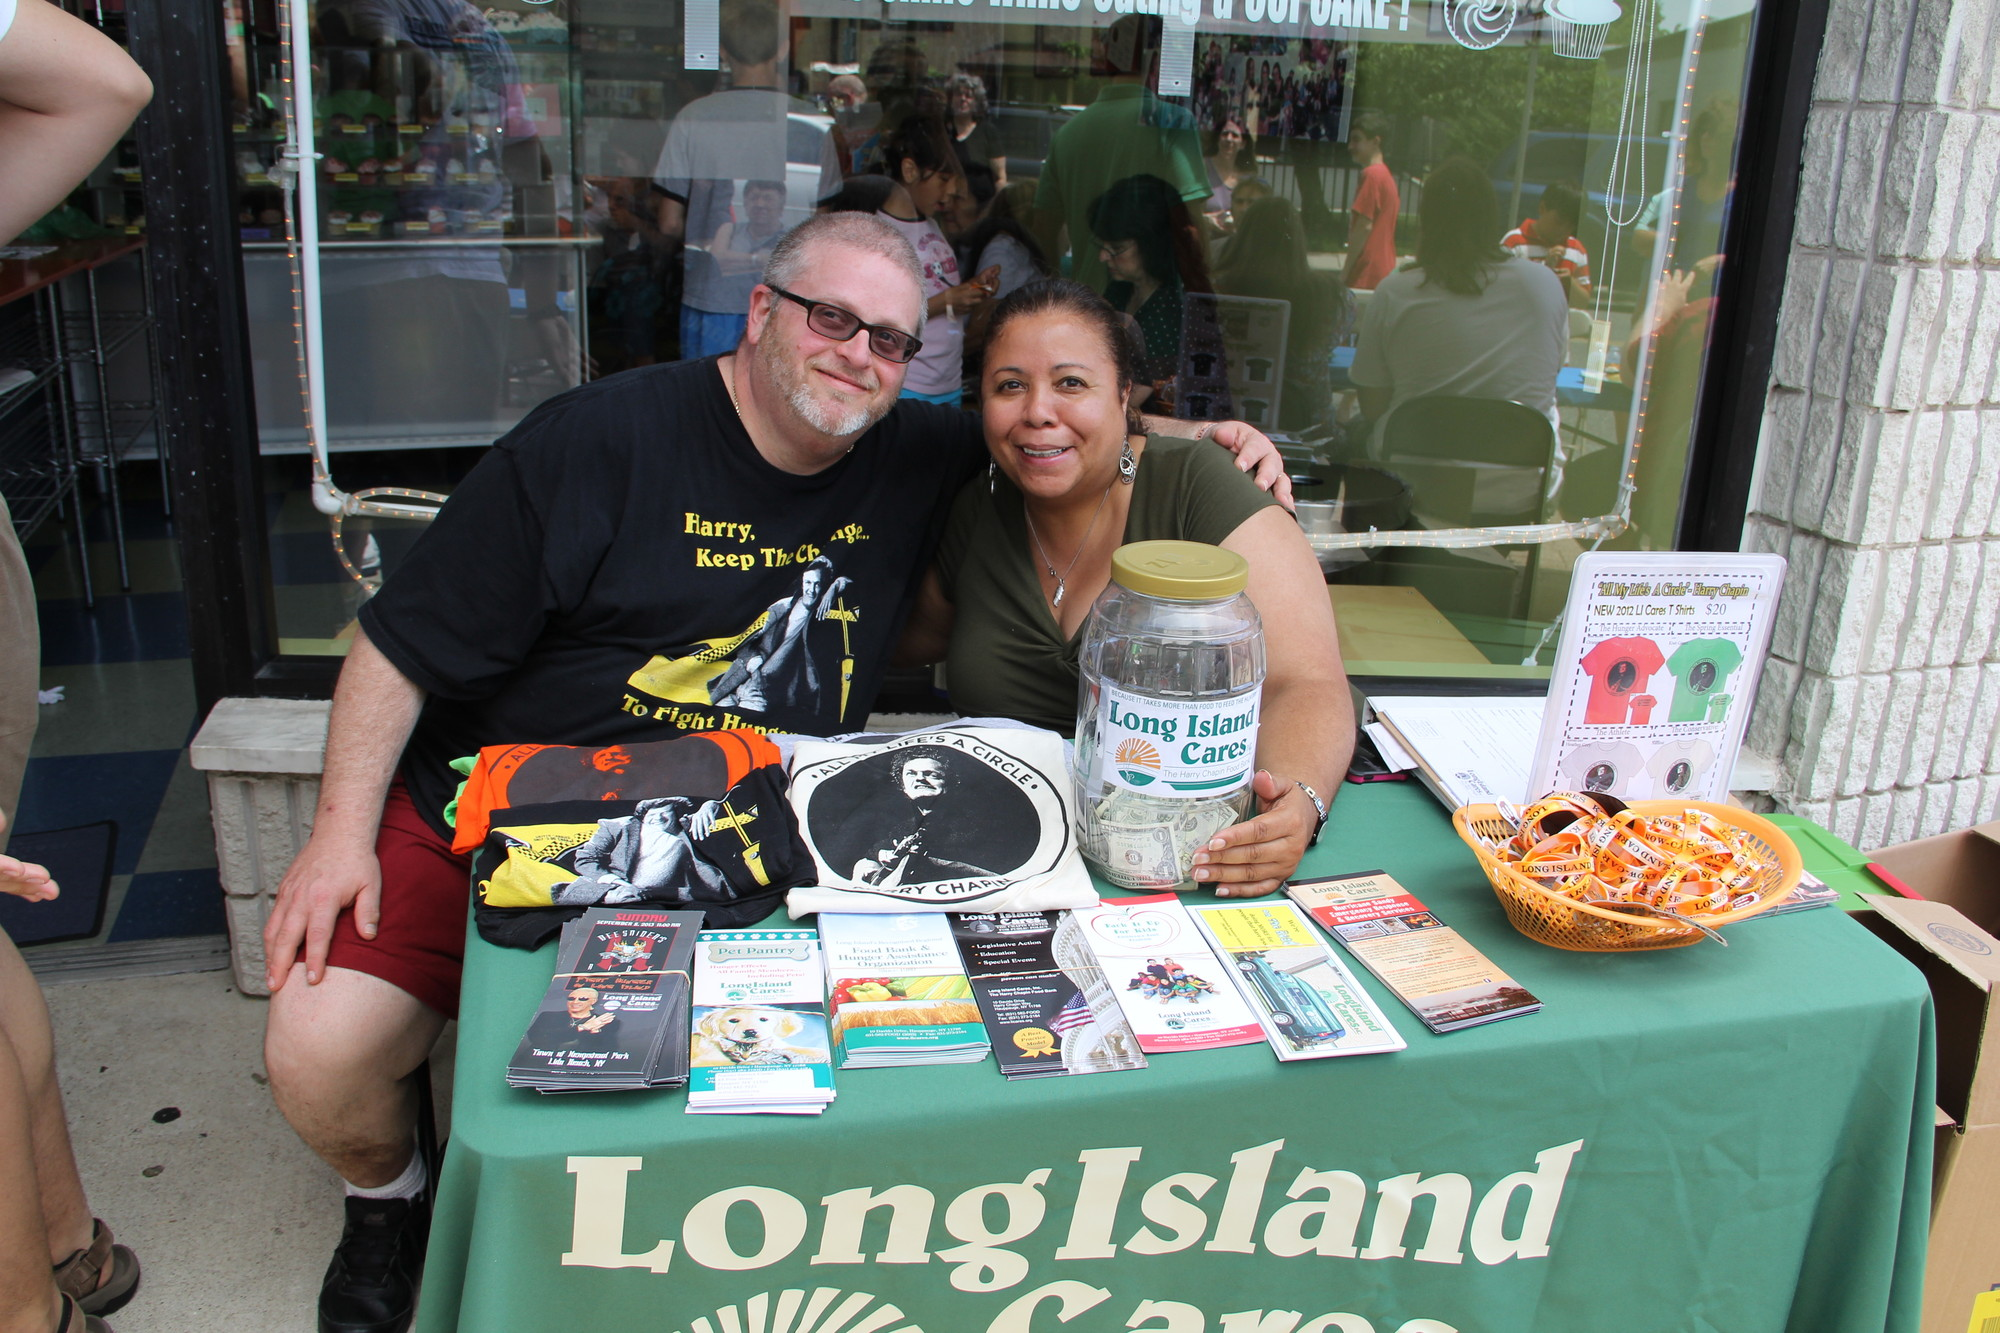 Scott Passik and Marinnette Flores, from left, accepted donations for Long Island Cares.